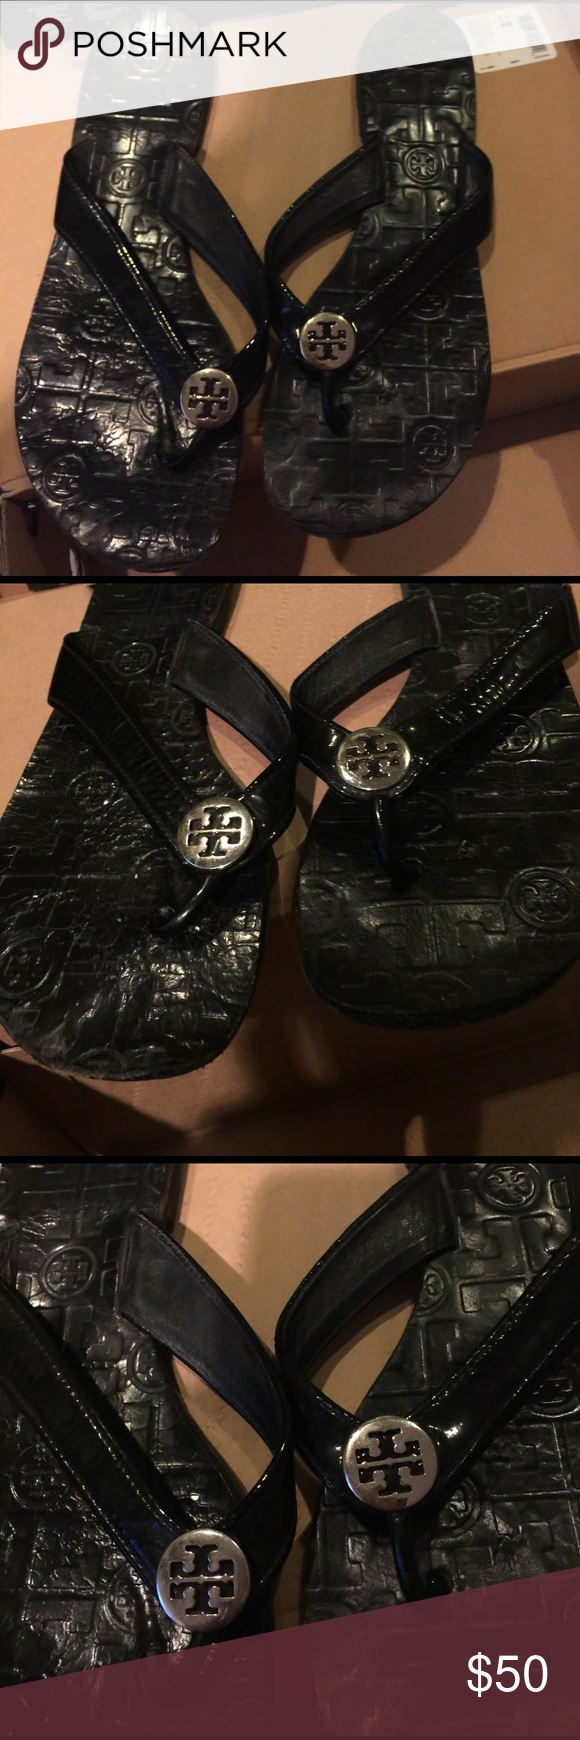 f1a0dba9ed640 Tory Burch Monogram flip flops Women s 8. Good worn condition. Light signs  of wear. True to size. Authentic. Tory Burch Shoes Sandals